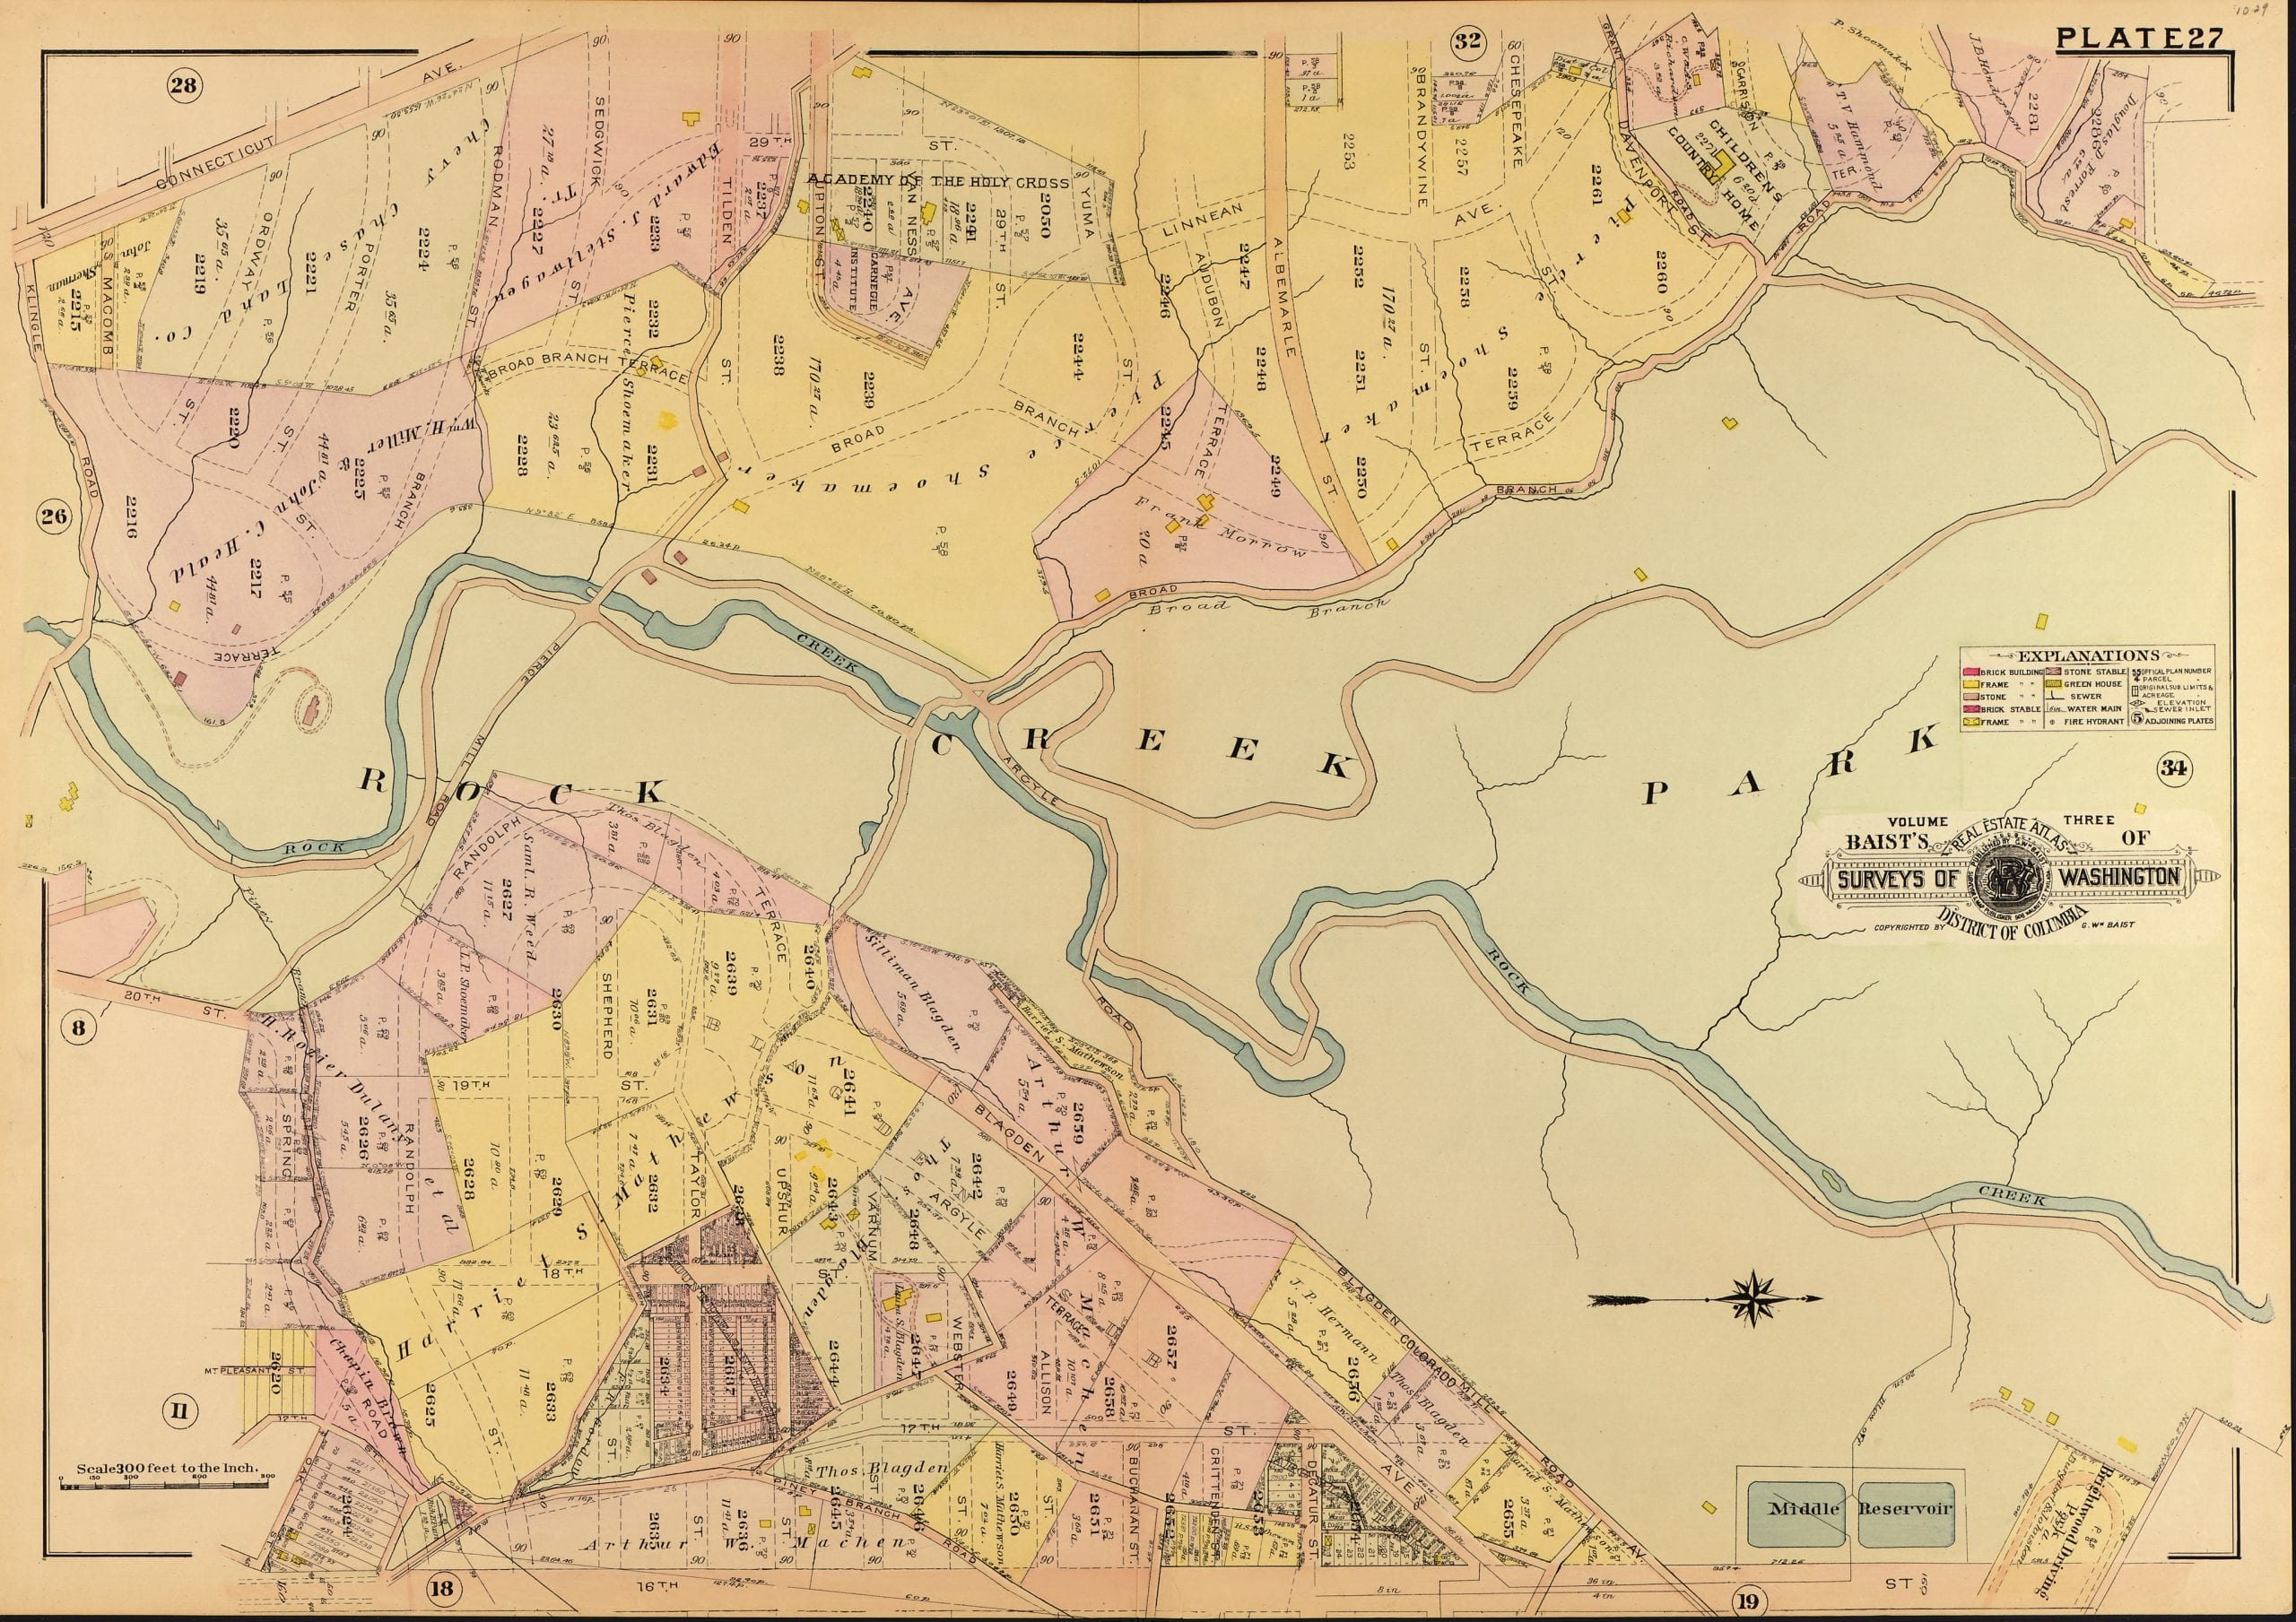 1907 Map of Peirce Mill and Rock Creek Park